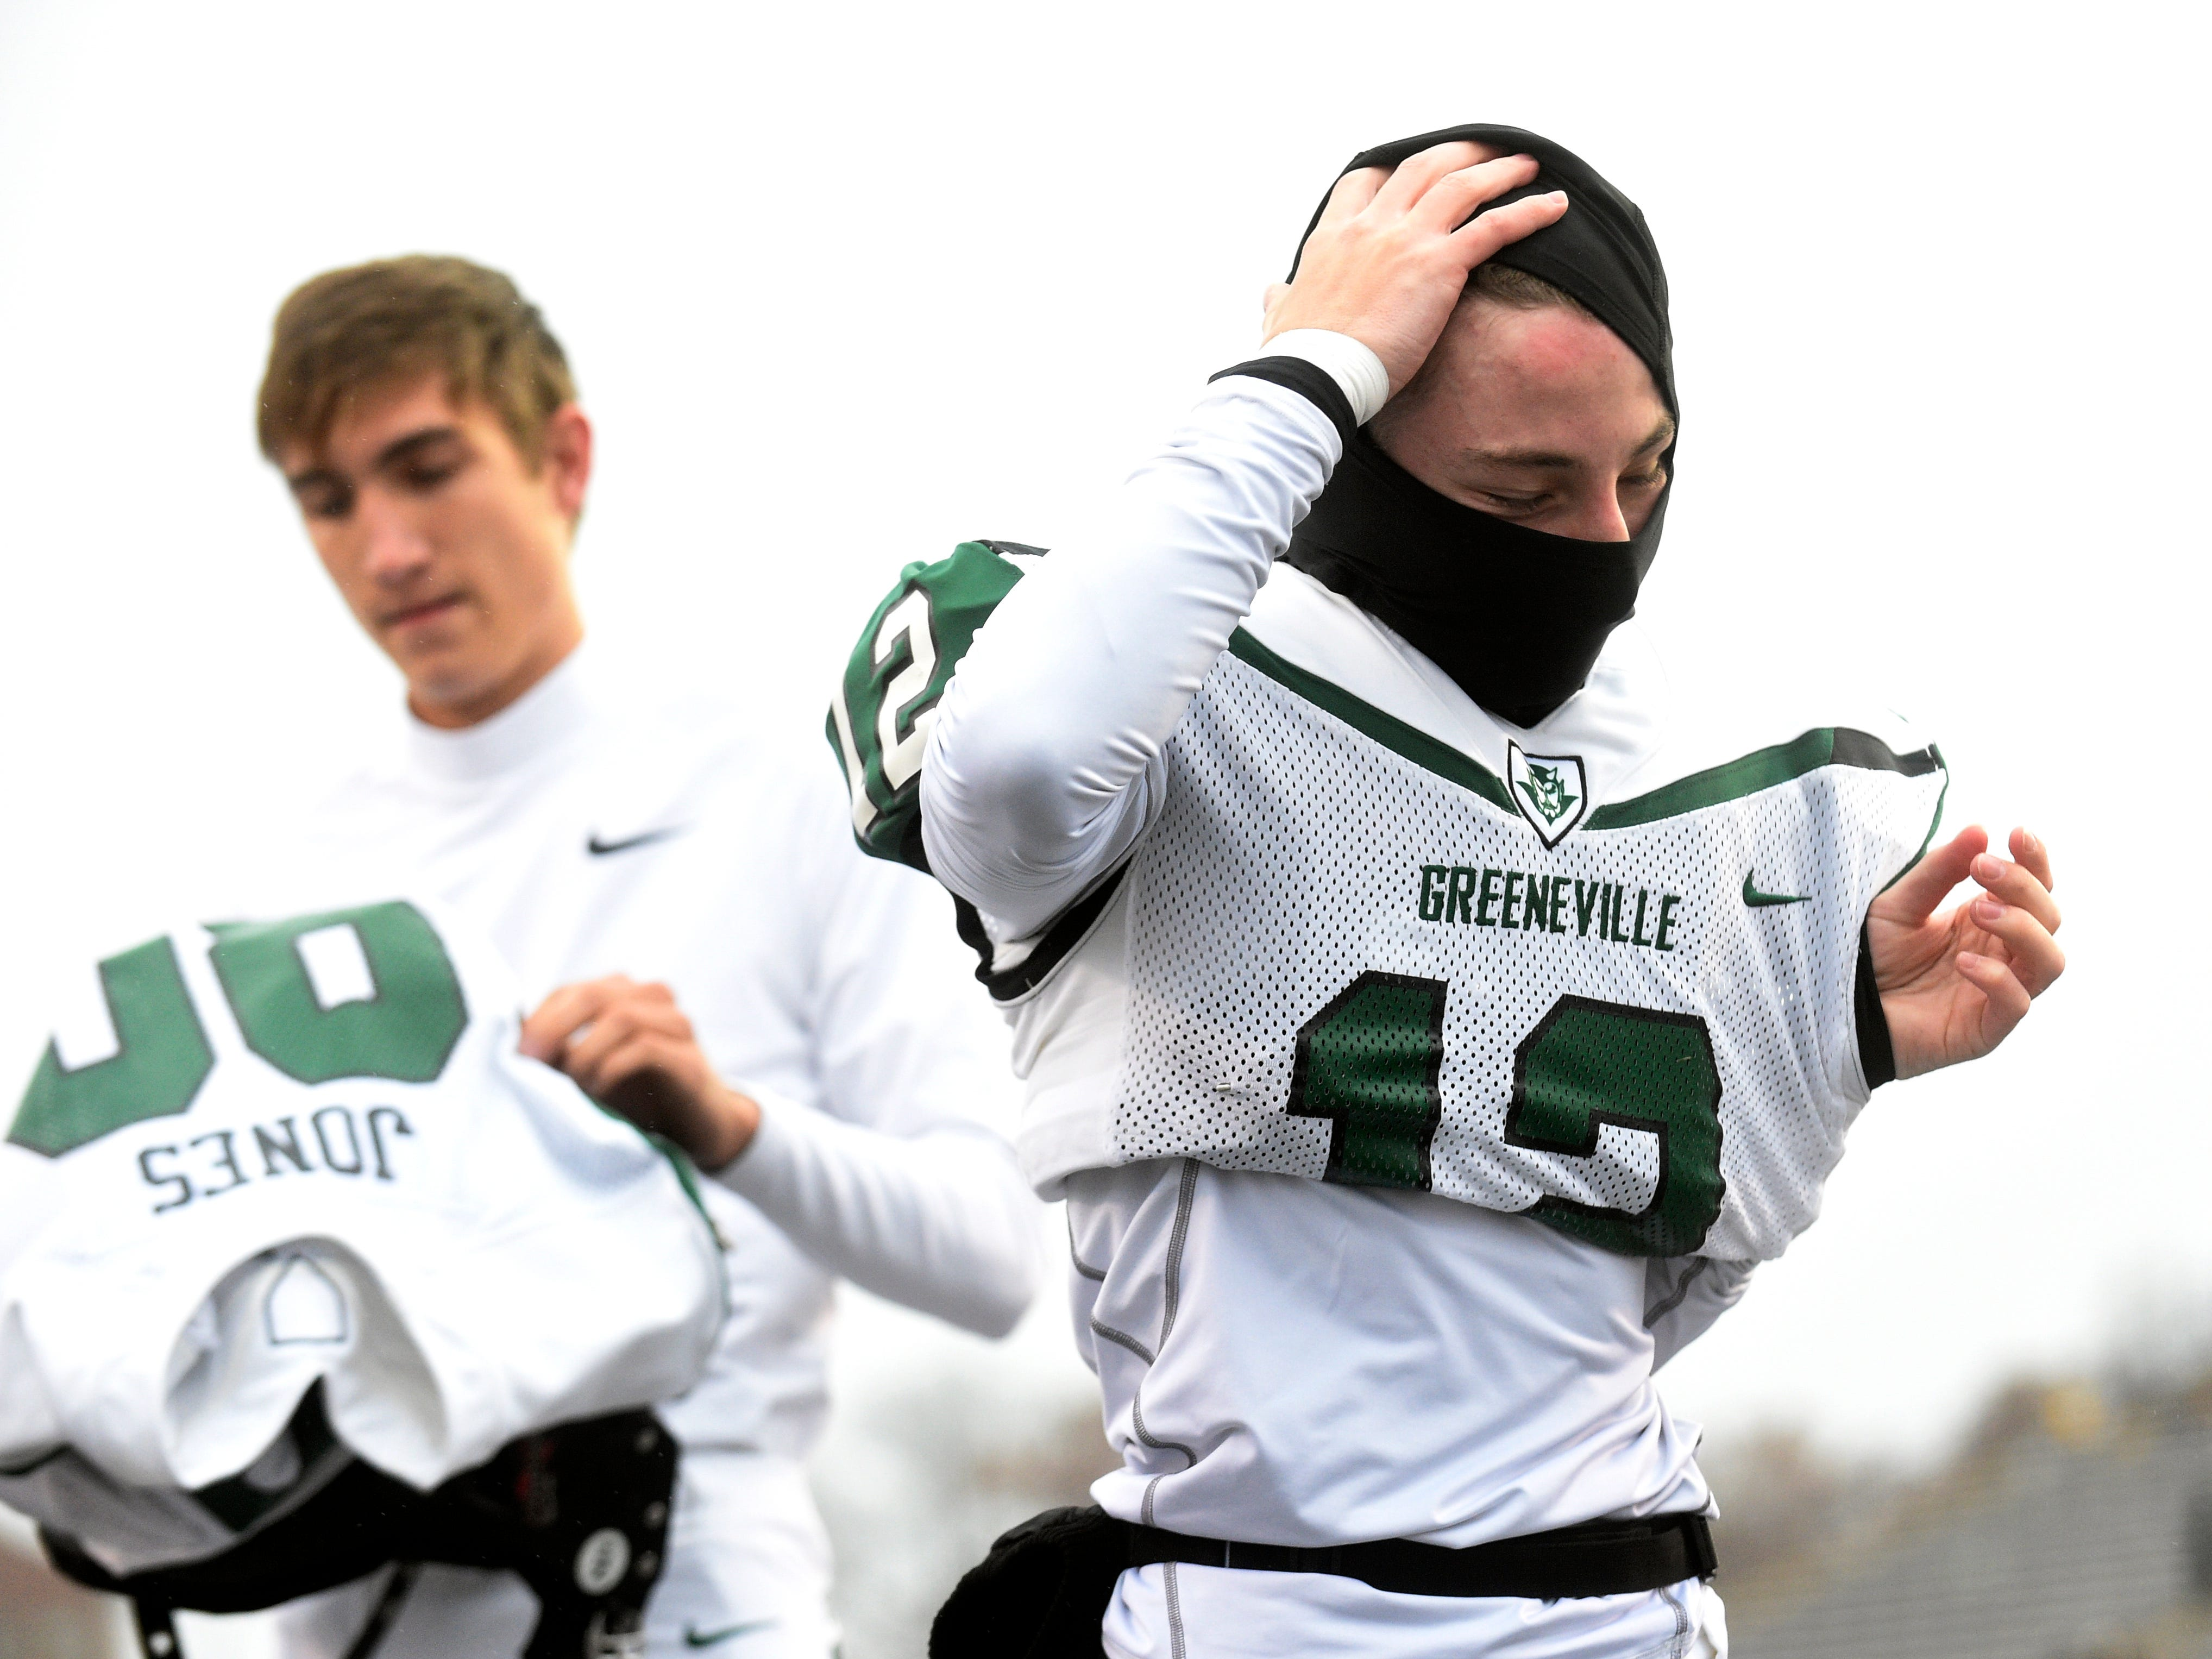 Greeneville's Josh Wallin (12) gets ready for the Class 4A BlueCross Bowl state championship at Tennessee Tech's Tucker Stadium in Cookeville, Tenn., on Thursday, Nov. 29, 2018.